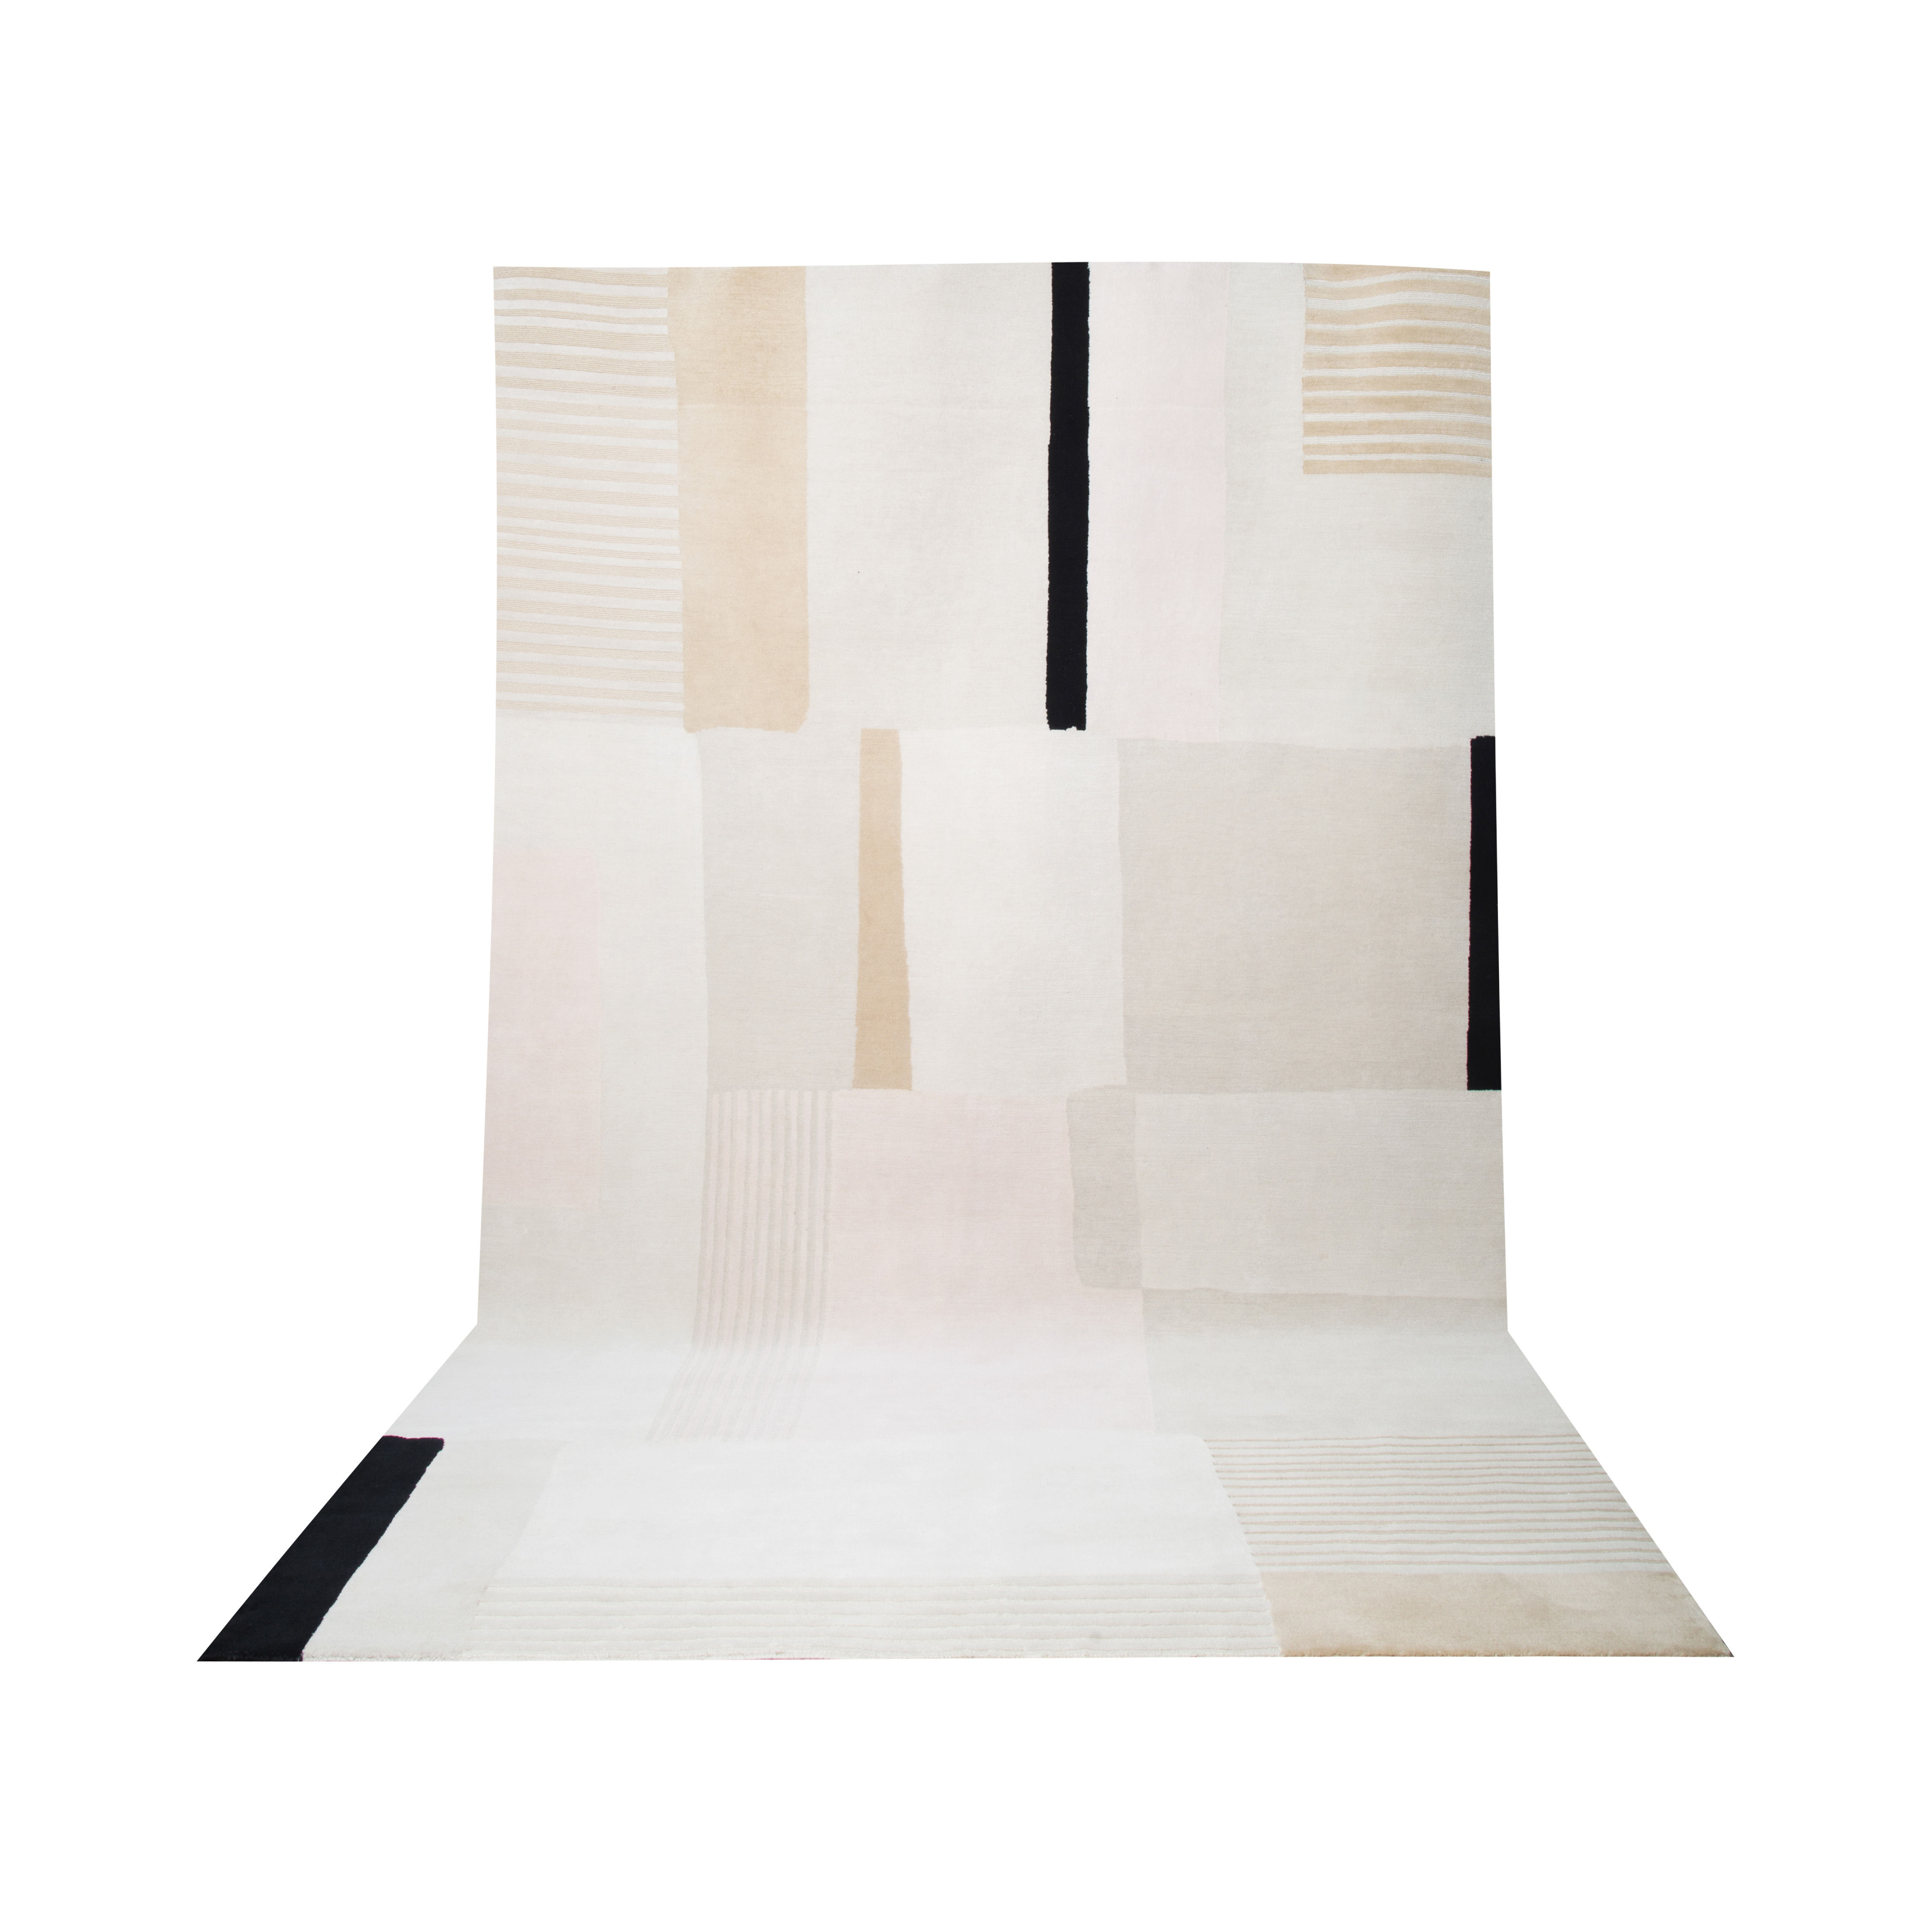 Decoration - Rugs - Boro Small Rug - / 170 x 240 cm by Maison Sarah Lavoine - Beige - Cotton, Wool